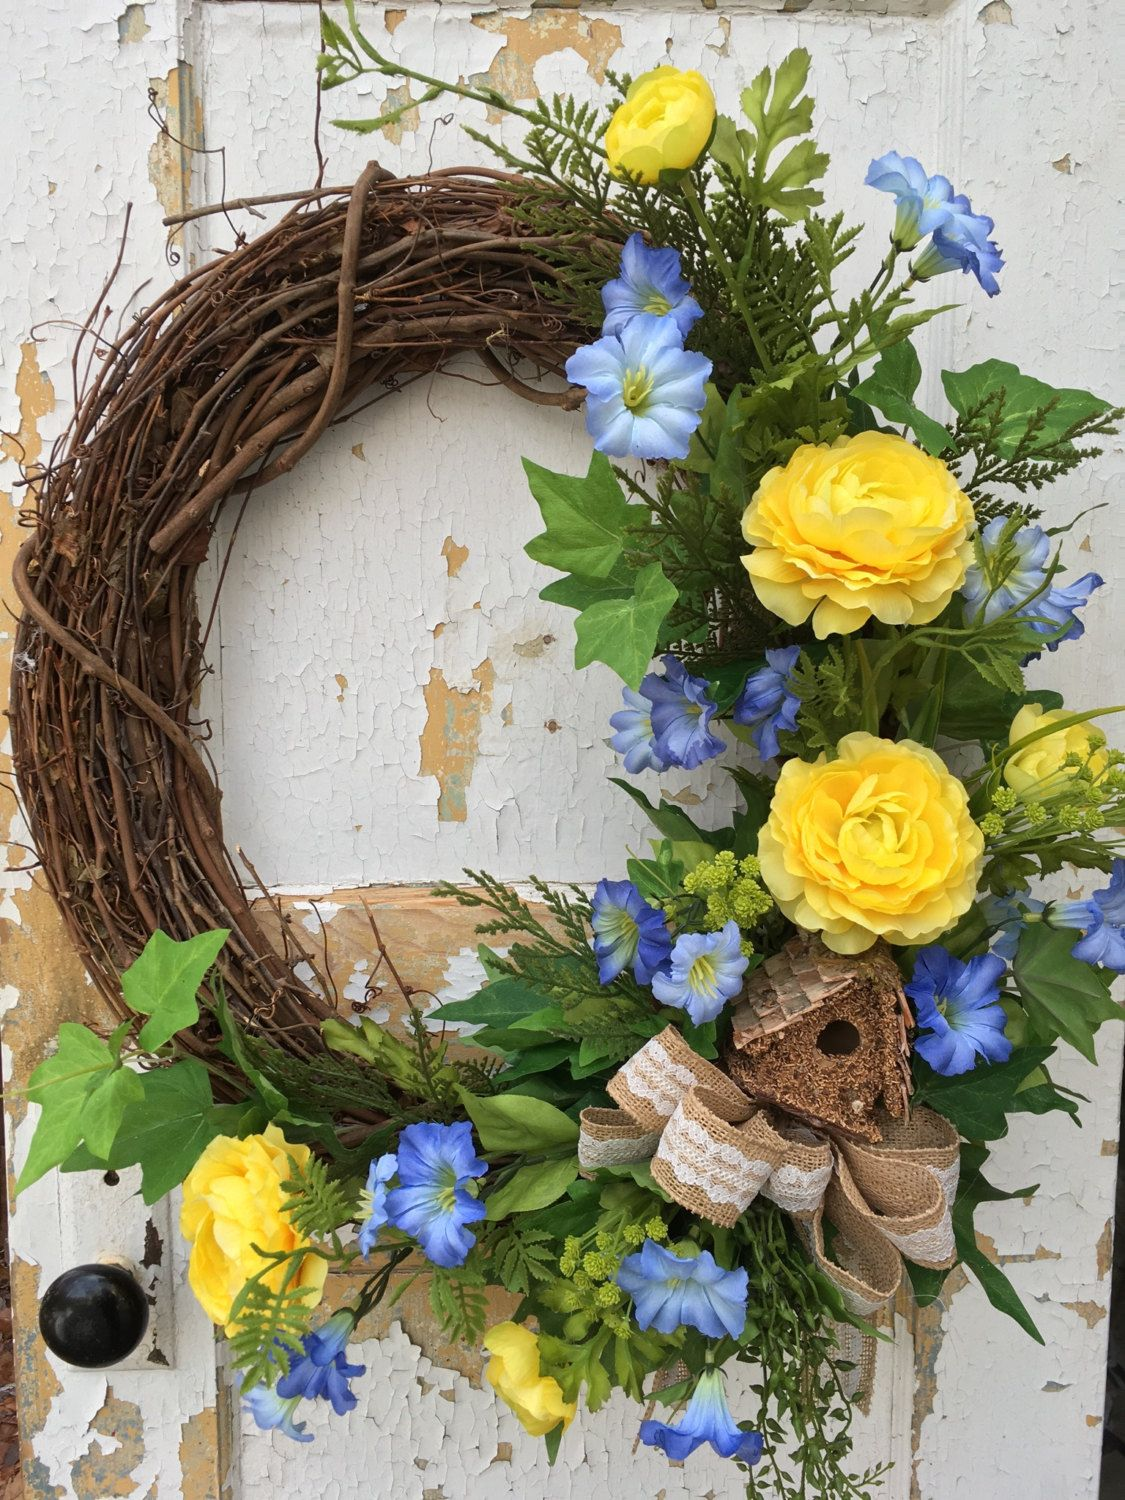 Spring wreath for front door easter wreath birdhouse wreath spring wreath for front door easter wreath birdhouse wreath housewarming gift by flowerpowerohio negle Choice Image